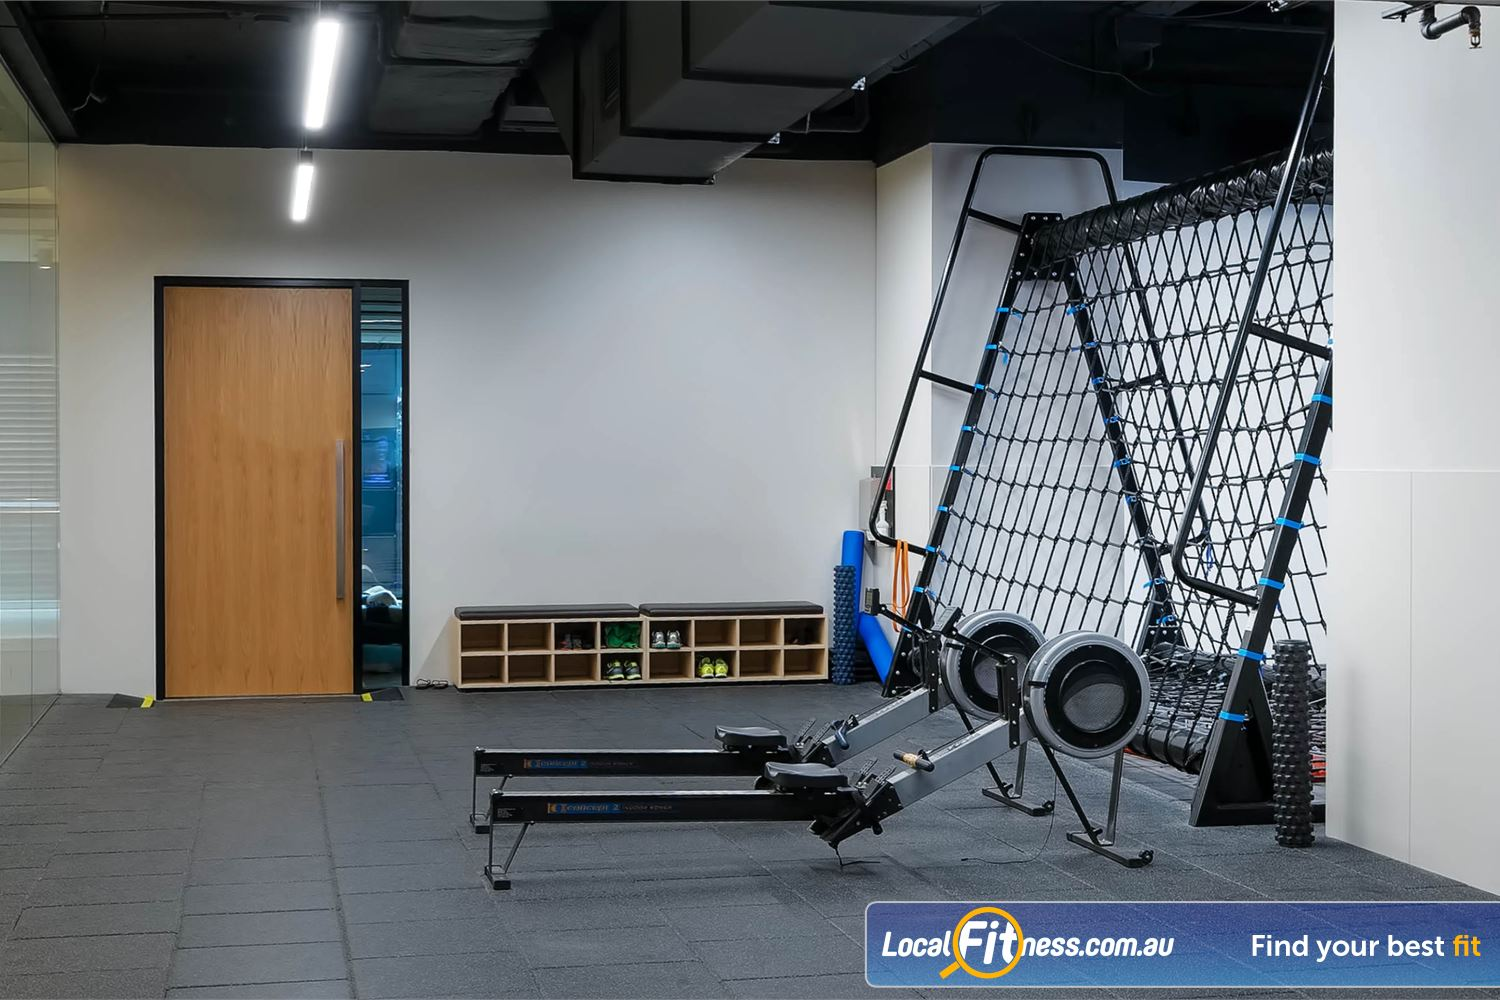 Fitness First Platinum Park St Sydney Indoor rowing and climbing cargo net will challenge your fitness unique to Park St Fitness First.